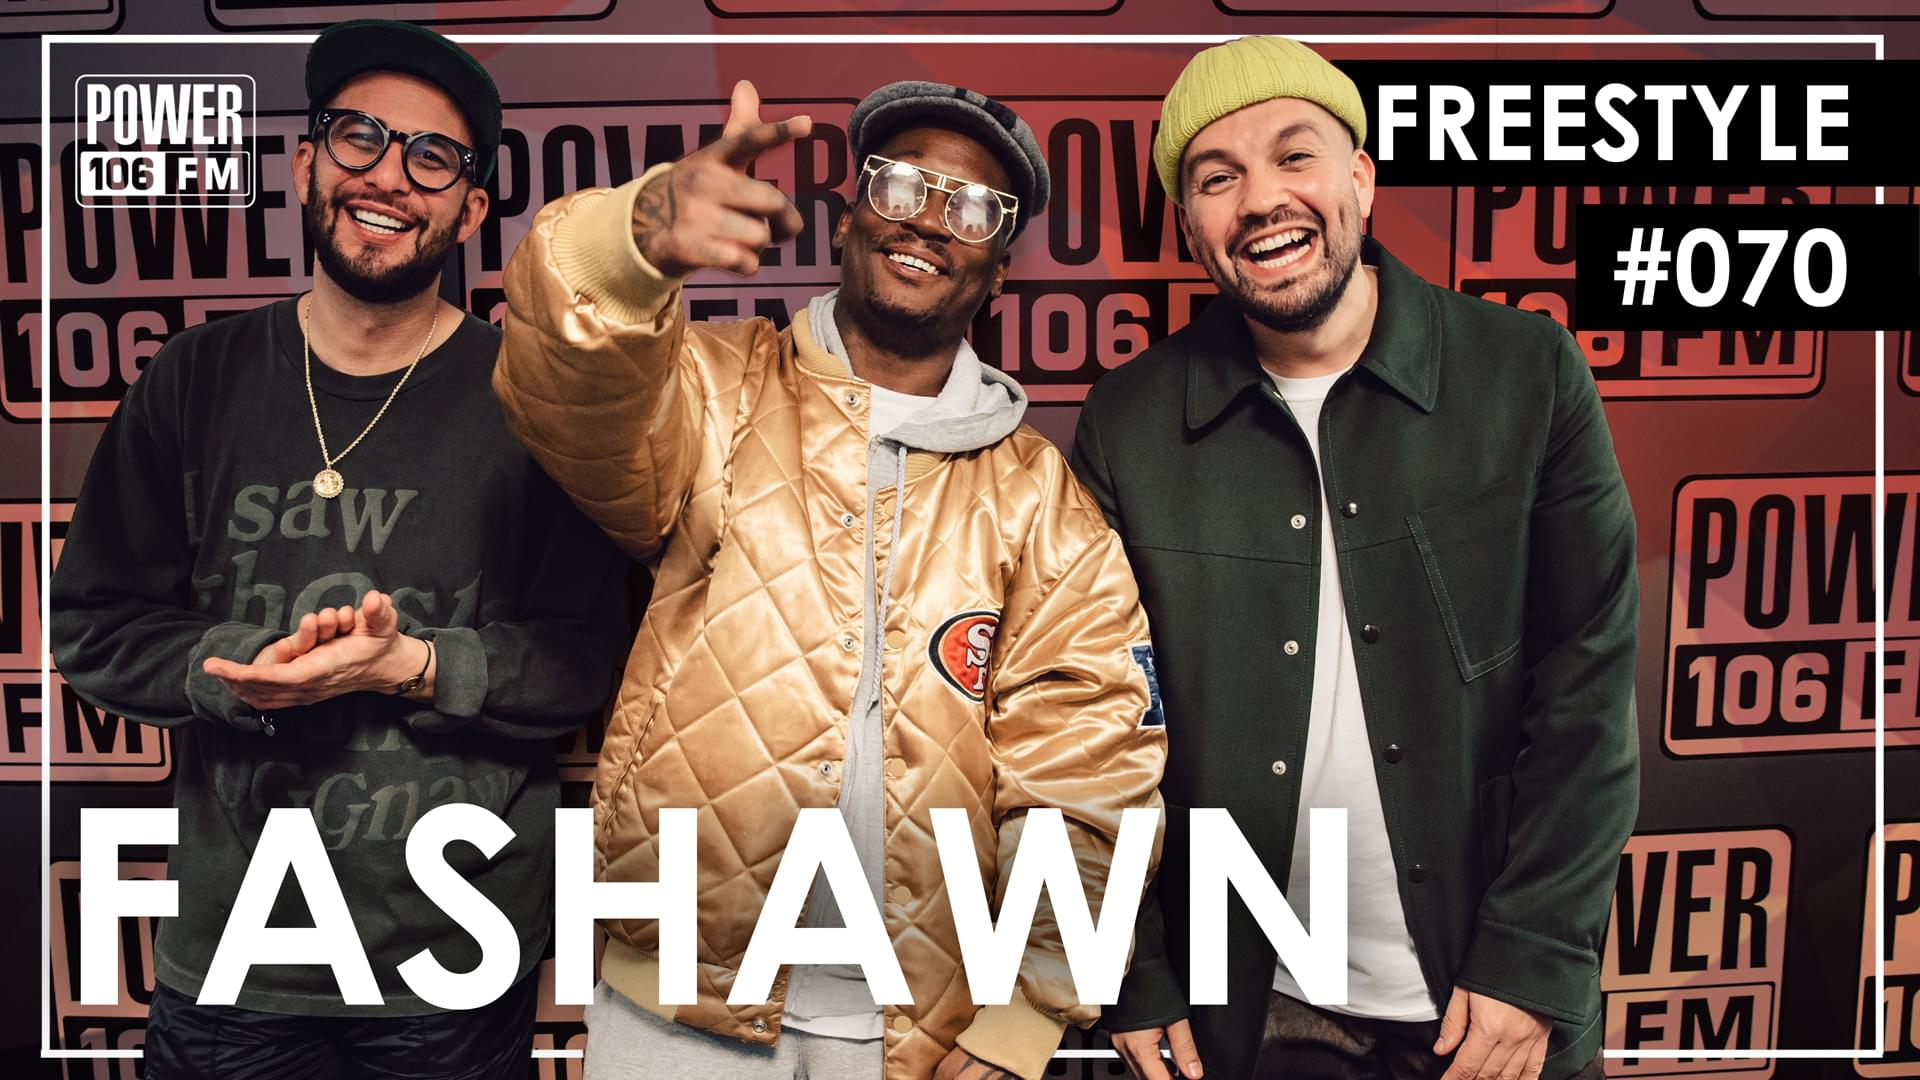 Fashawn Freestyle w/ The L.A. Leakers – Freestyle #070 [WATCH]